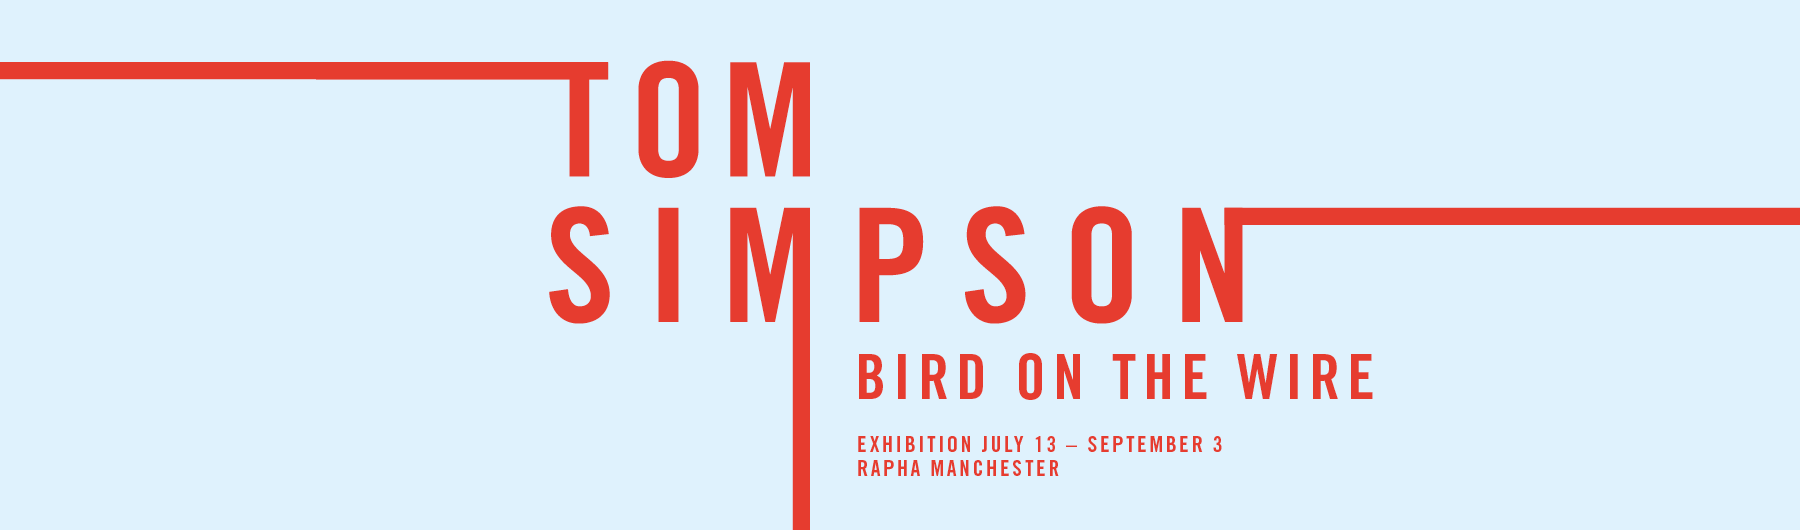 Tom Simpson: Bird on the Wire Exhibition